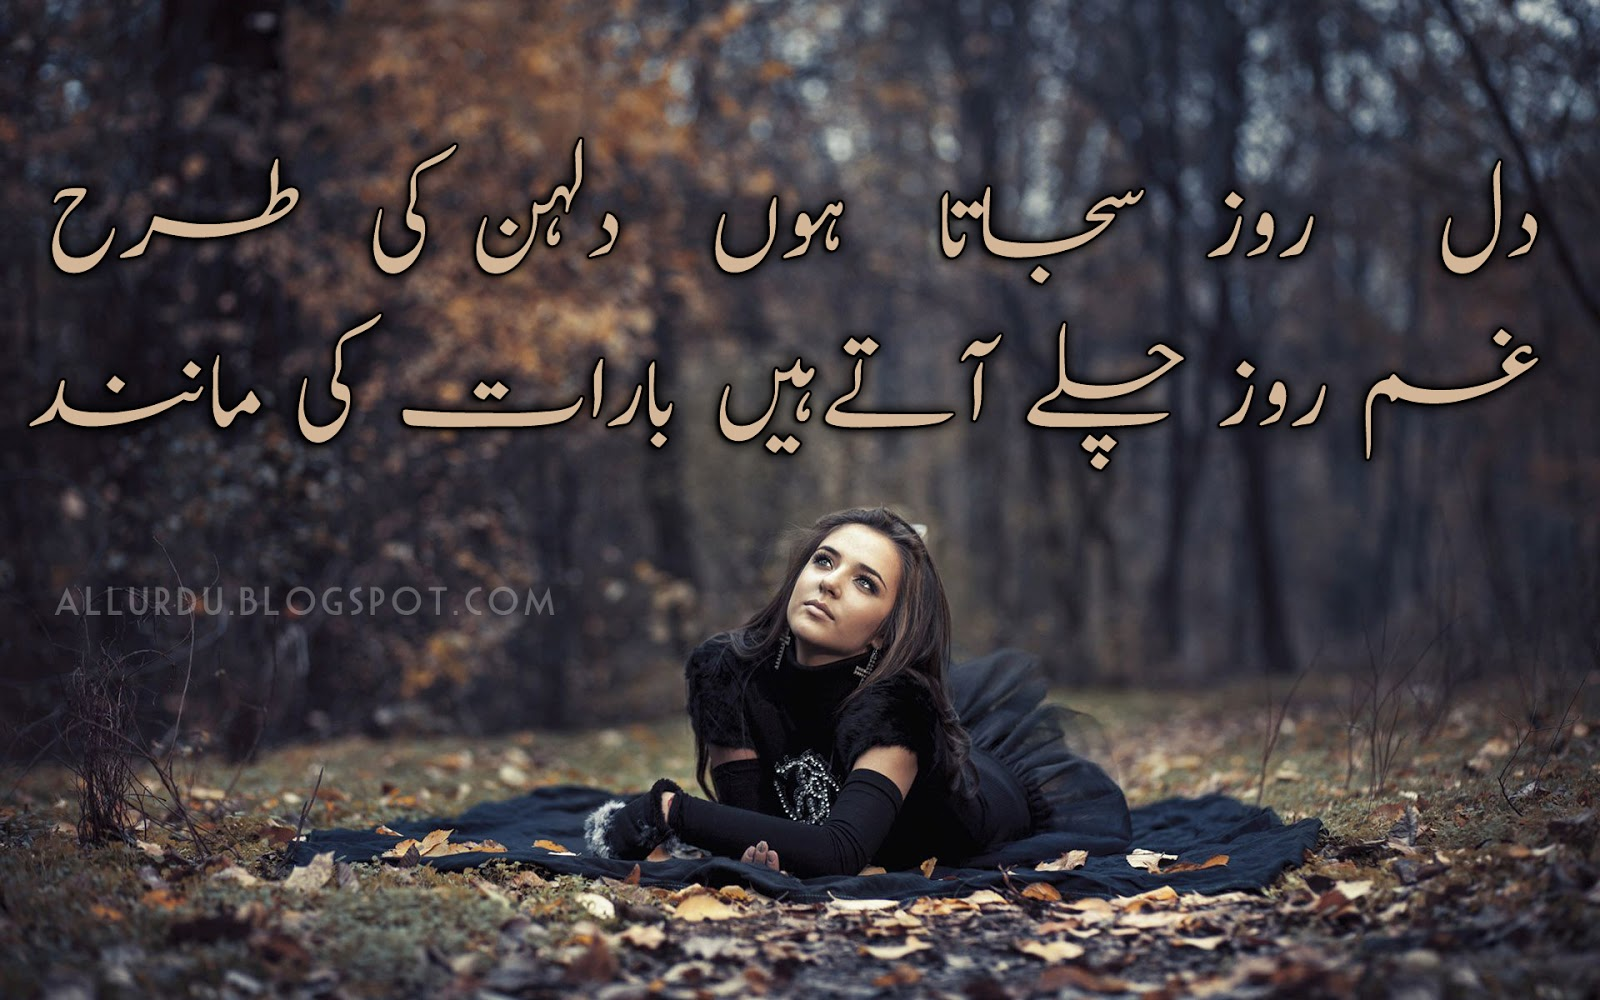 12 Best Designed Sad Urdu Poetry Images - VOL 1 | All ...